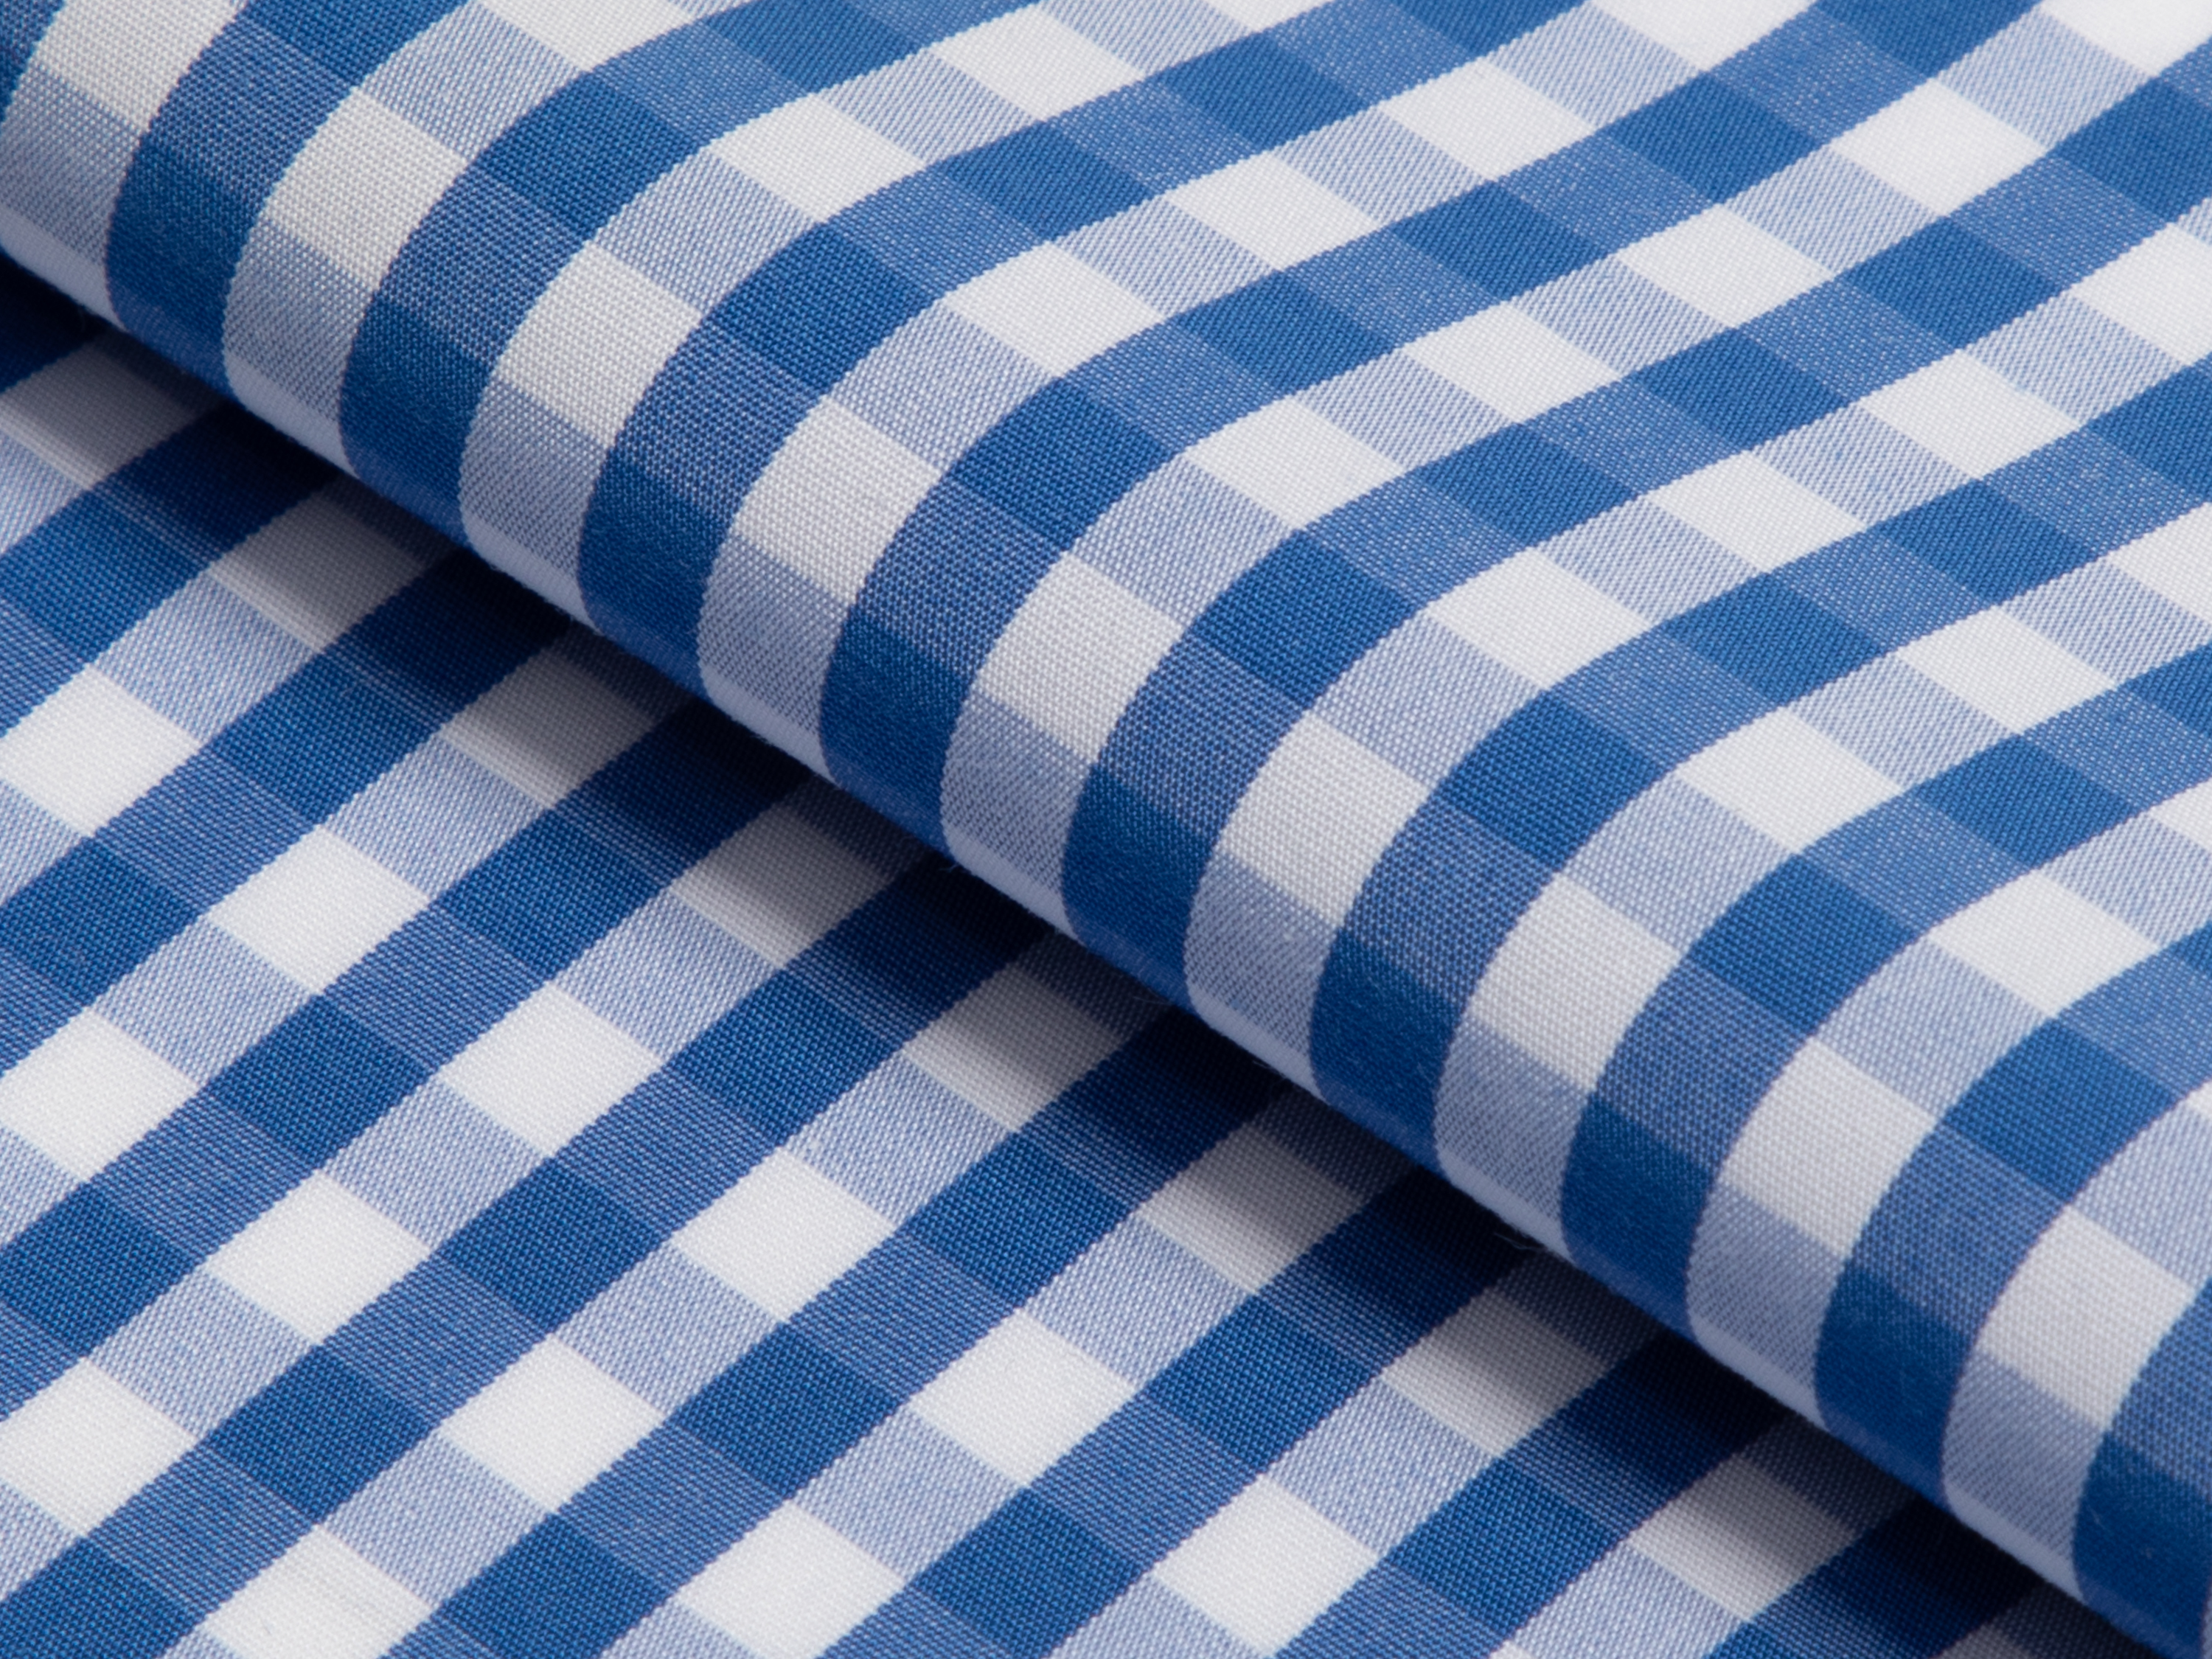 Buy tailor made shirts online - GINGHAM LUXURY  - Gingham Mid Blue